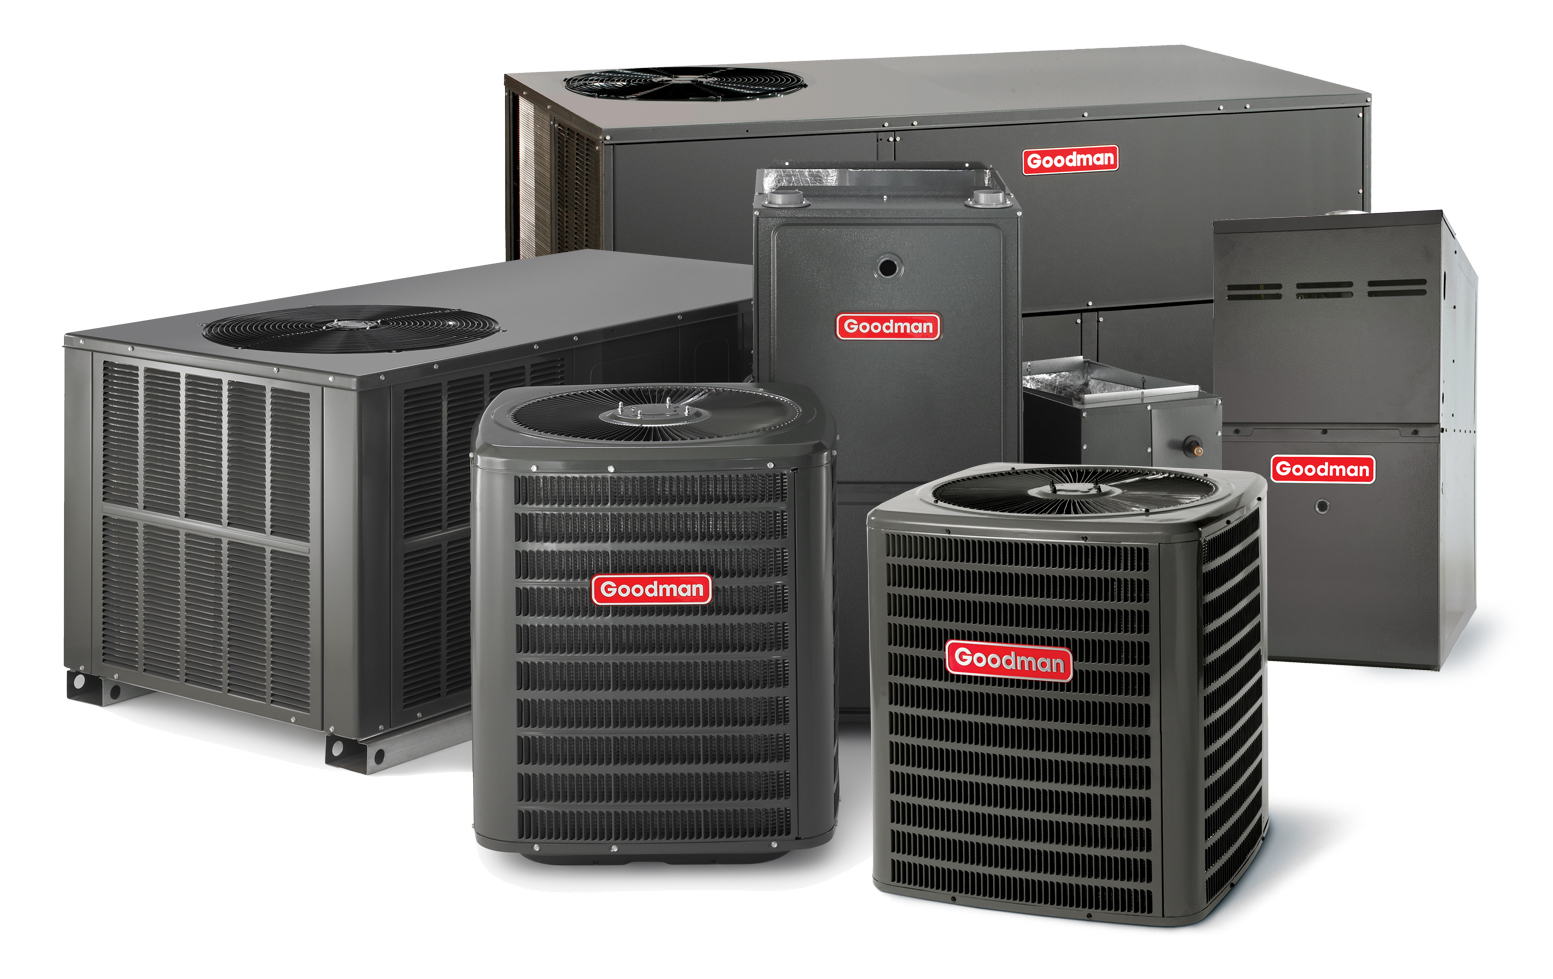 Emerson Condenser Fan Motor furthermore GE Motor Wiring Diagram in addition York Furnace Parts Diagram likewise Goodman Heating Air Conditioning Units also Rheem Air Handler Wiring Diagram. on carrier condenser fan motor replacement